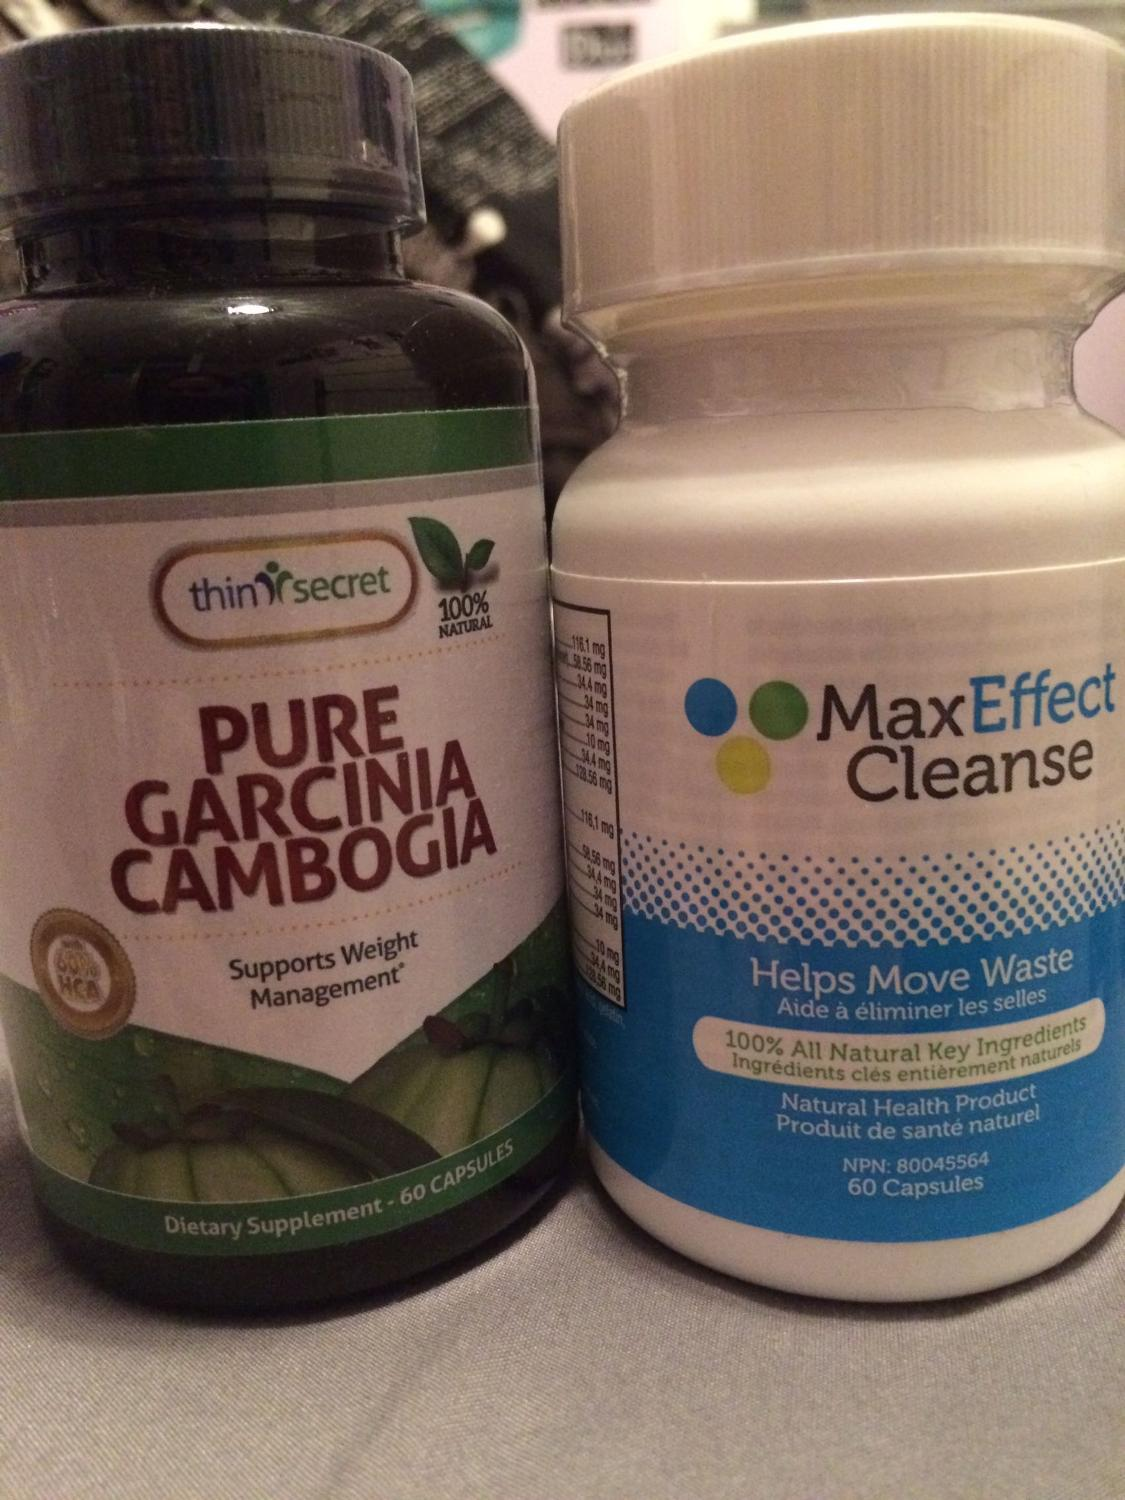 Can omega 3 pills help you lose weight